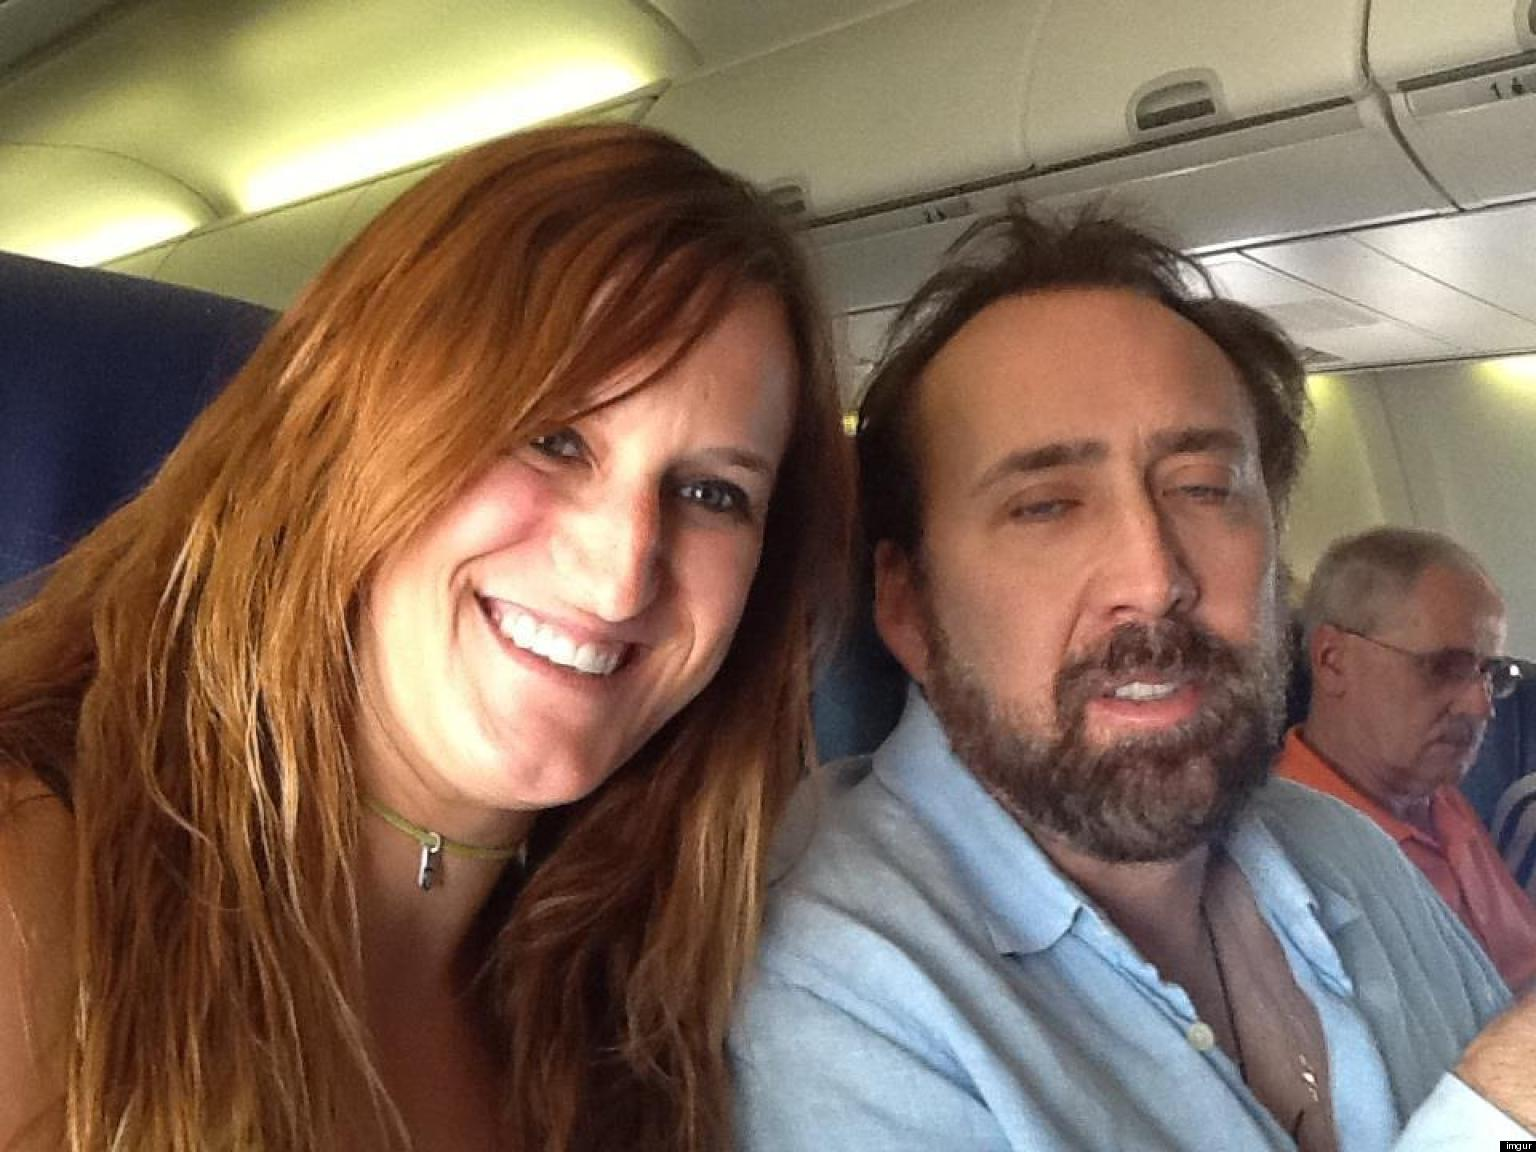 o-NIC-CAGE-PLANE-PHOTO-facebook.jpg